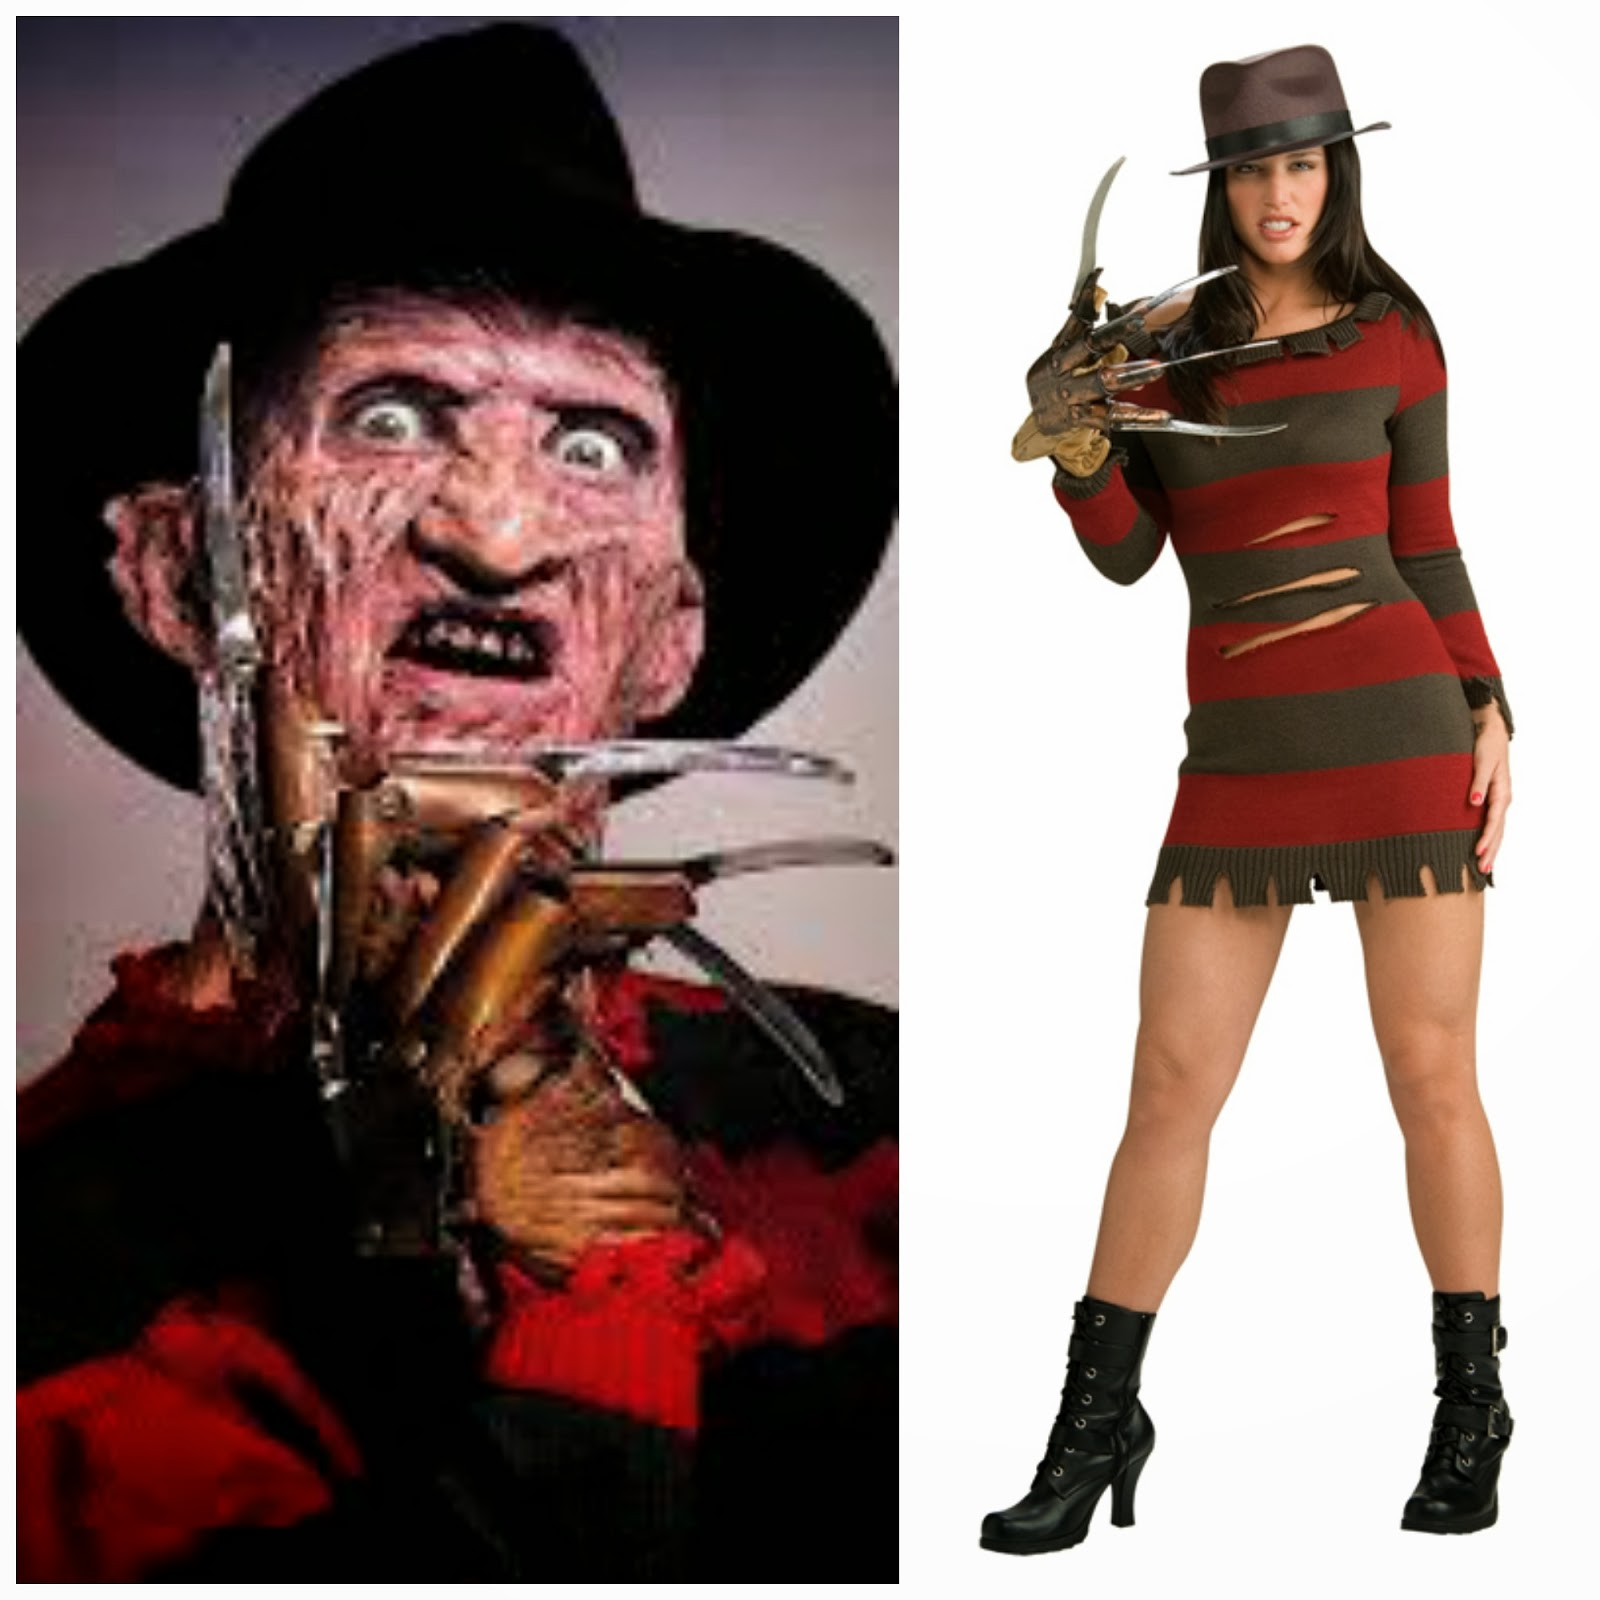 Female Freddy Krueger Outfit, Fancy Dress, Freddy Krueger Fancy Dress, Horror Fancy Dress